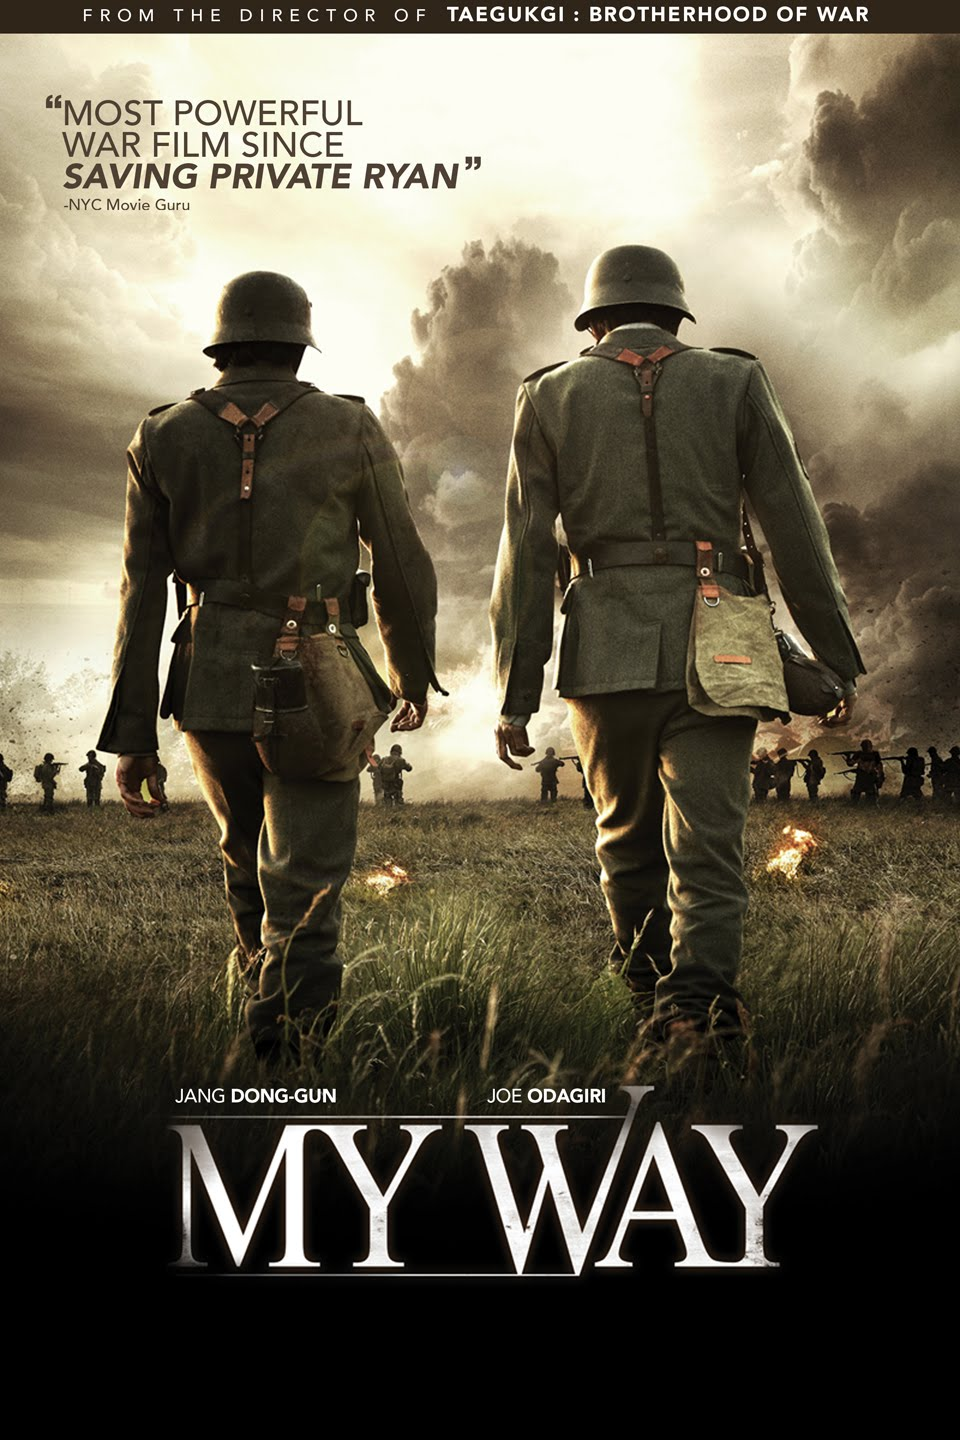 My Way - Mai wei (2011)